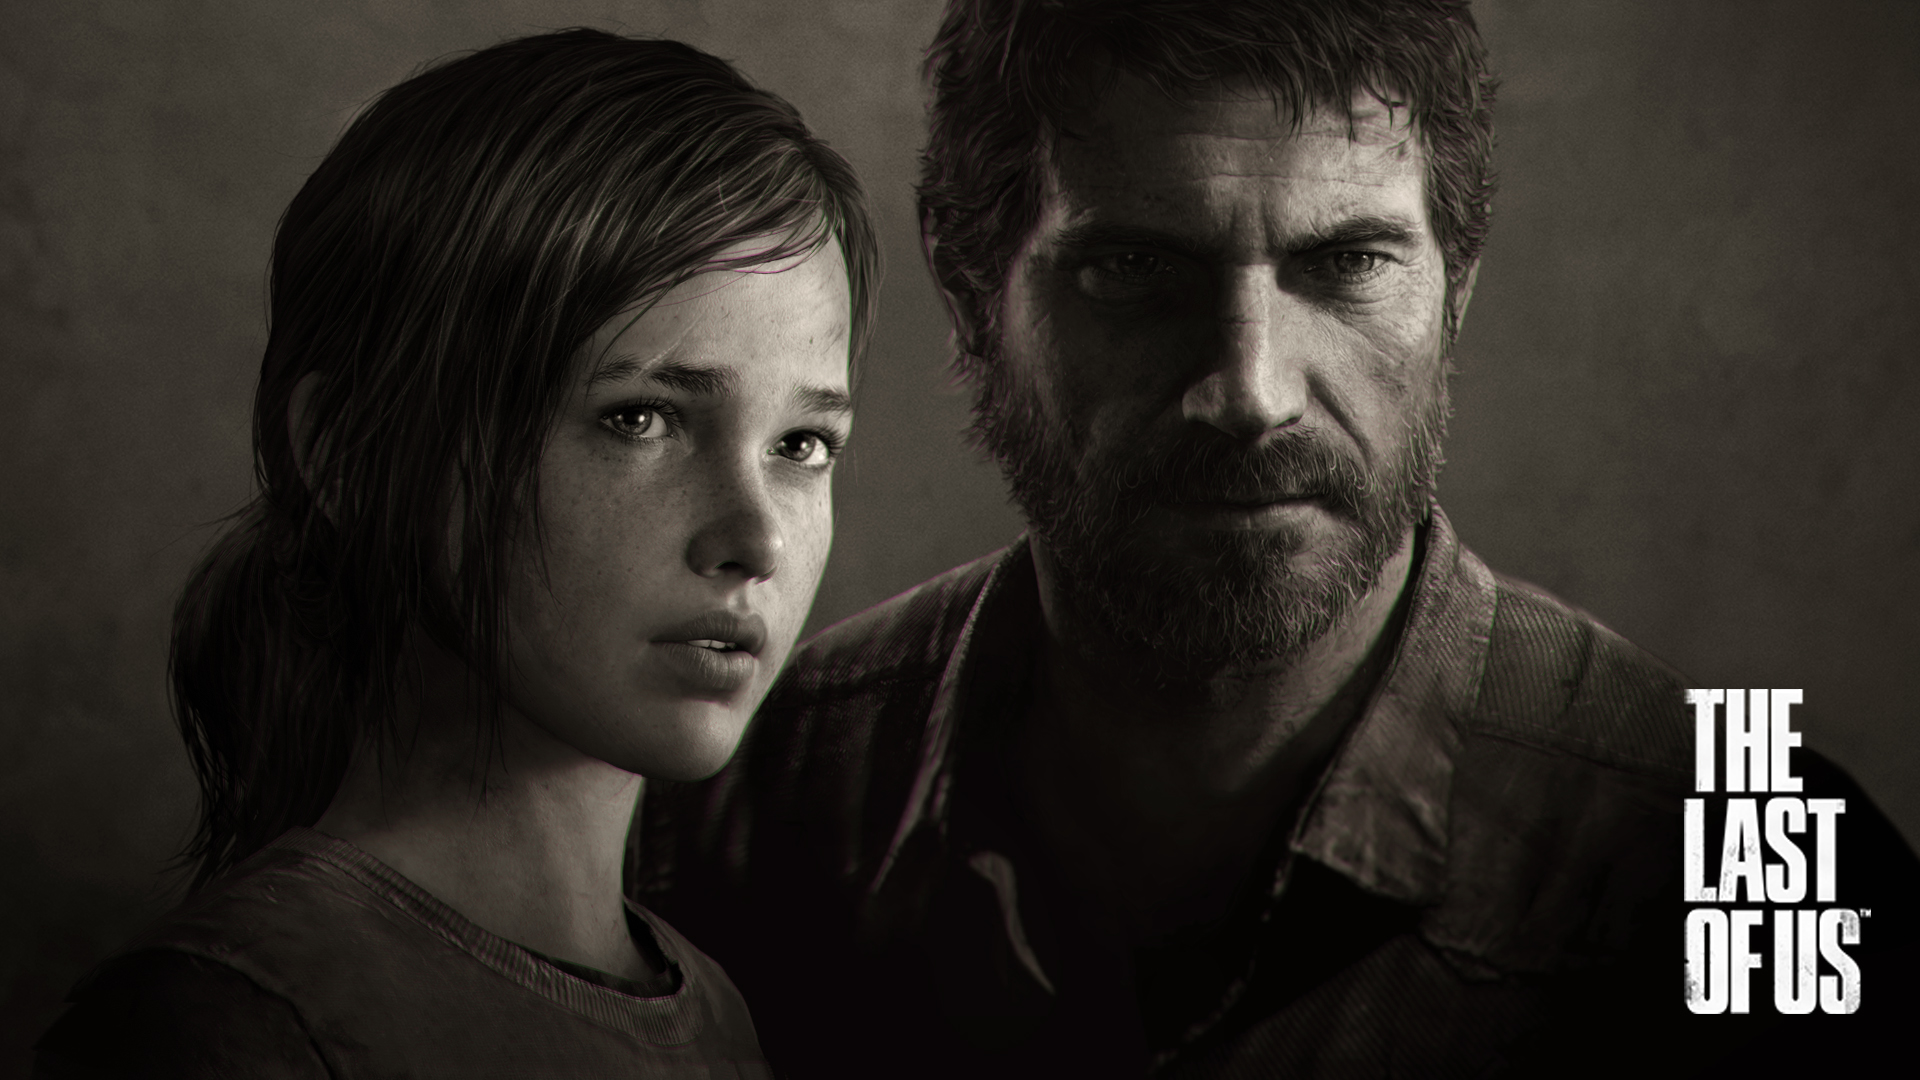 The Last Of Us Wallpapers PC 8SSZTU3   4USkY 1920x1080